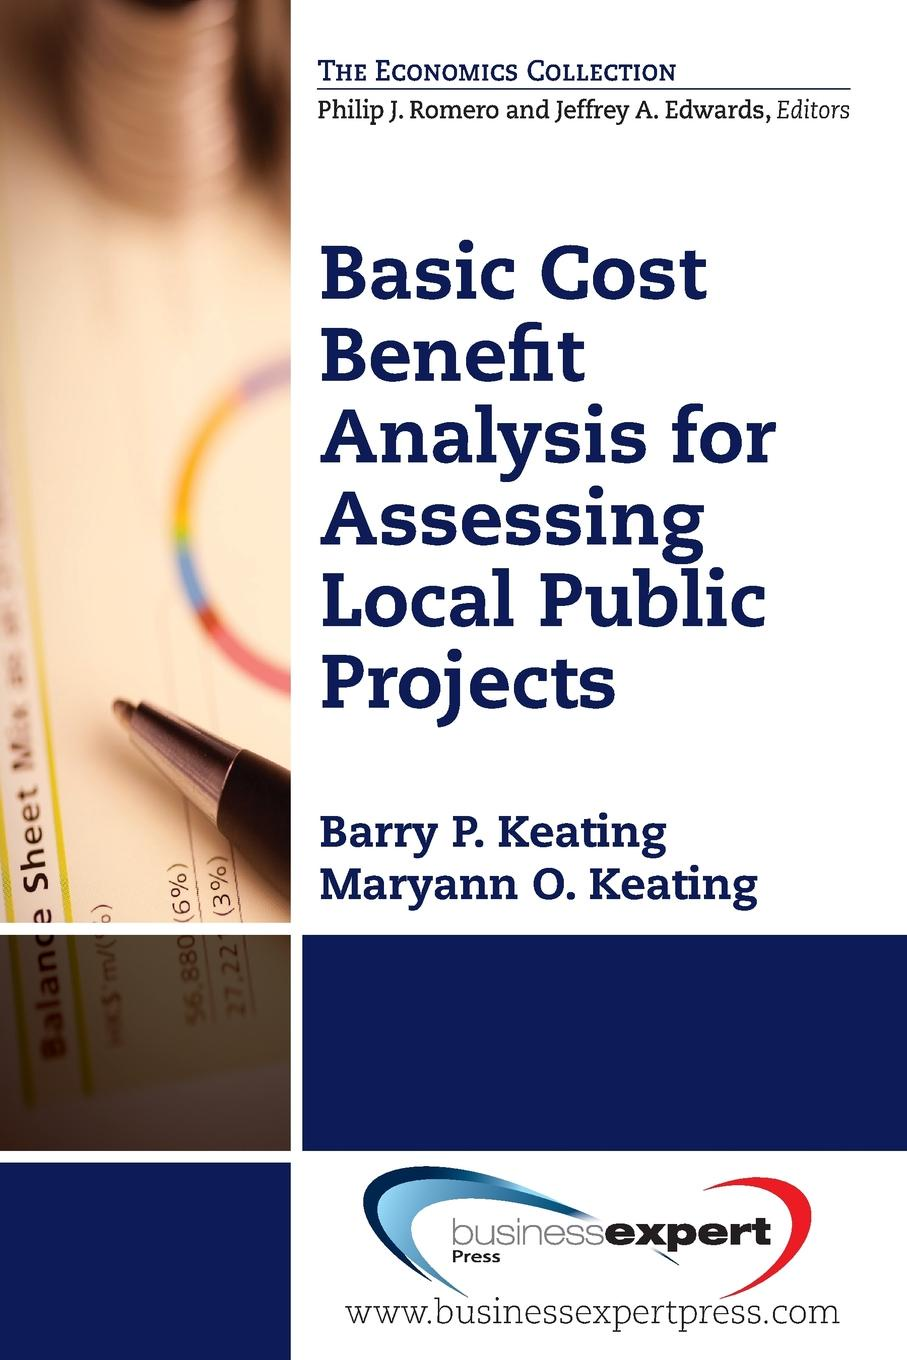 Barry P. Keating, Maryann O. Keating Basic Cost Benefit Analysis for Assessing Local Public Projects david weimer cost benefit analysis and public policy